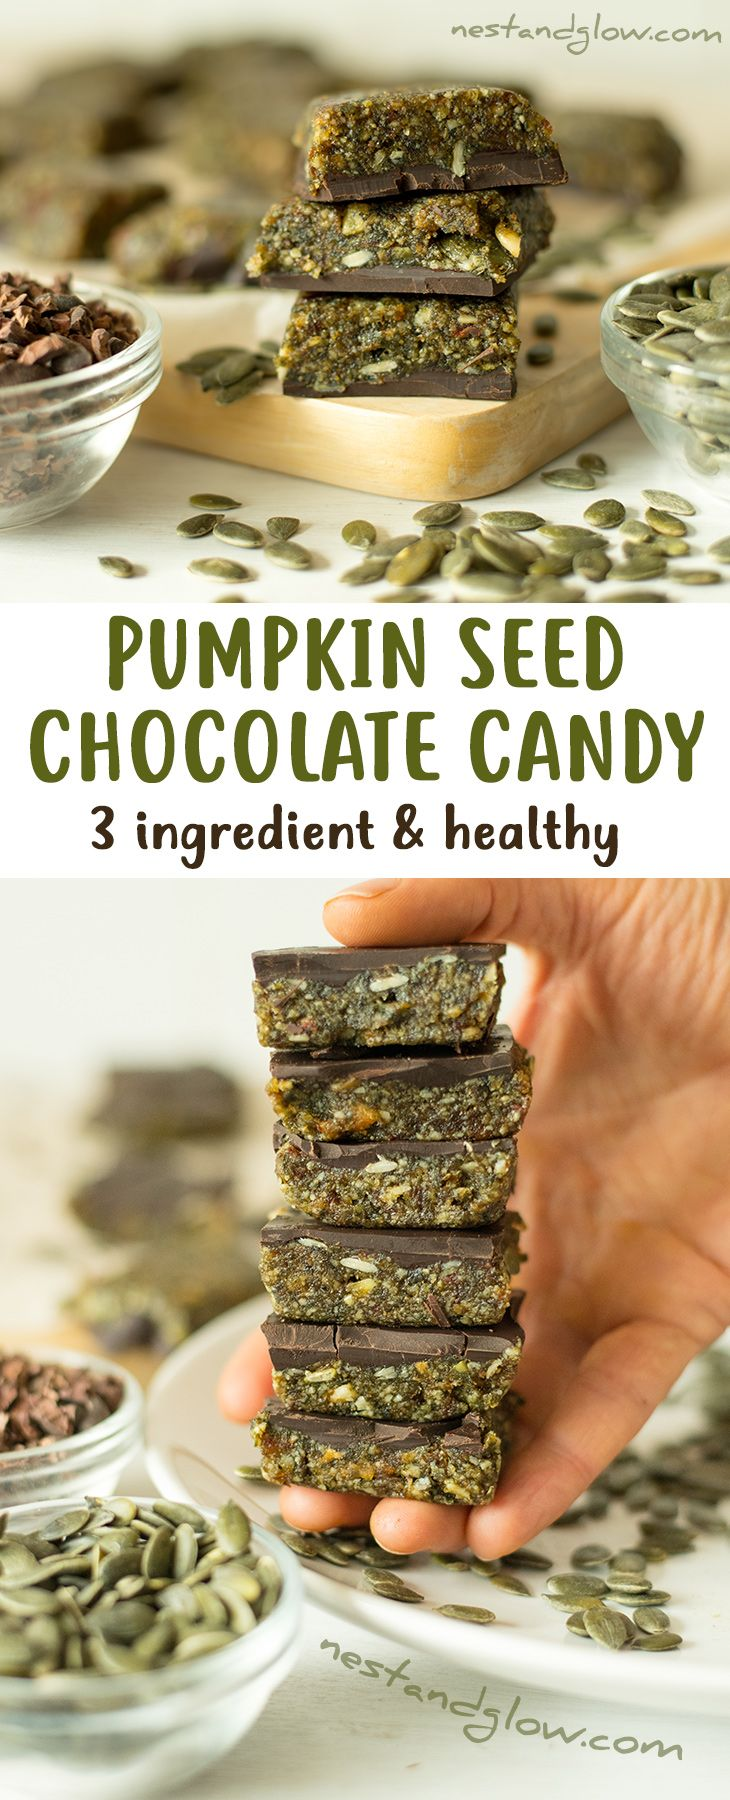 3 Ingredient Pumpkin Seed Chocolate Candy Is The Healthy Treat To Try